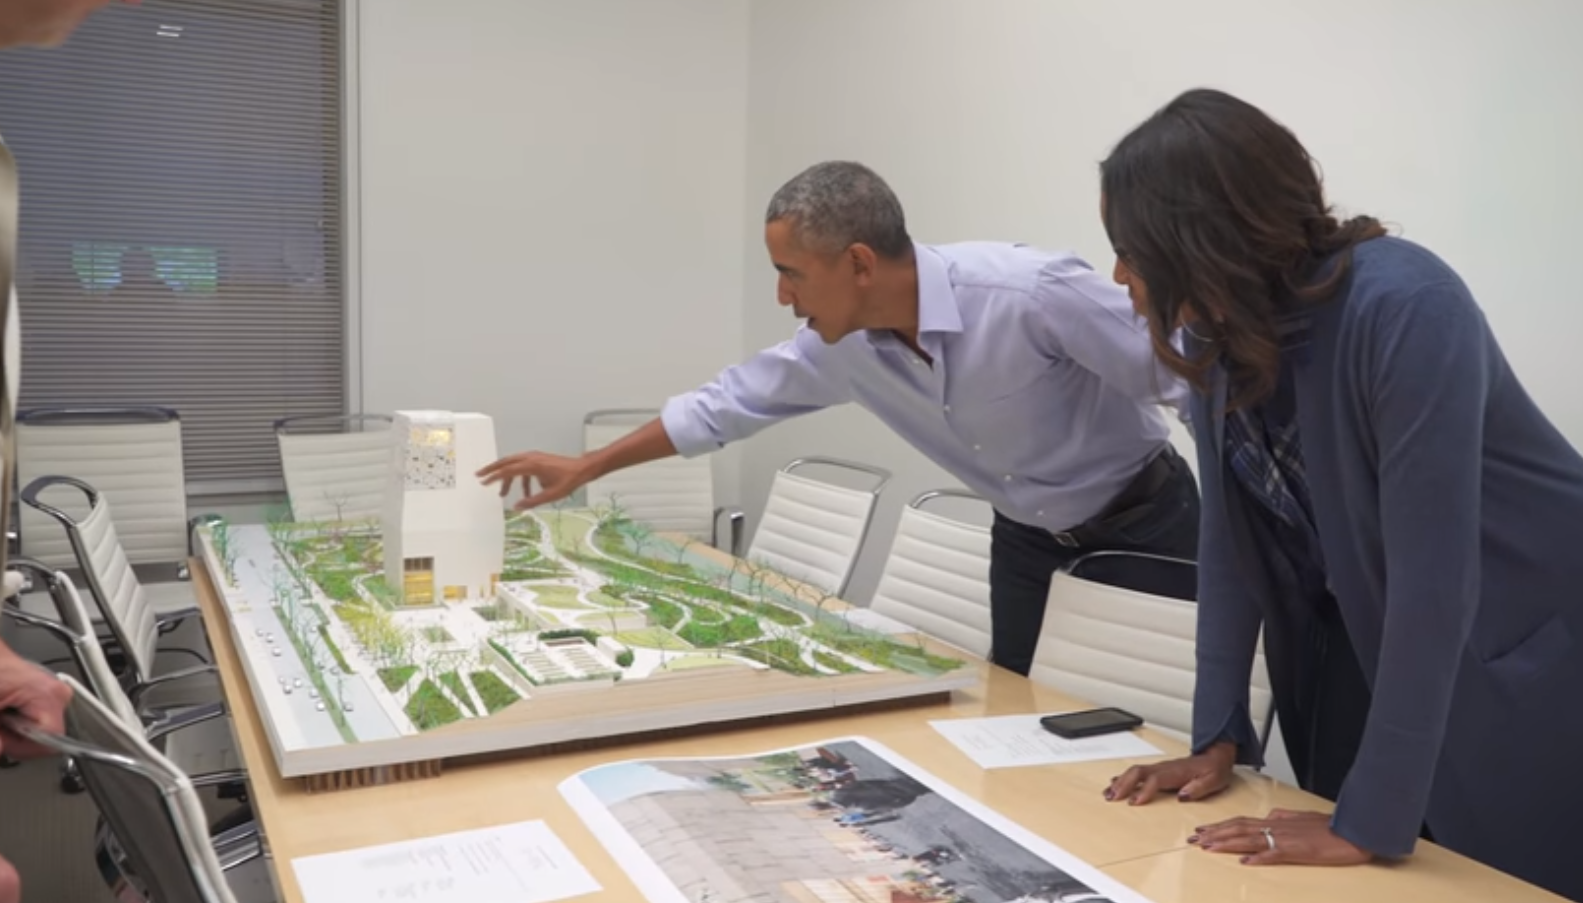 Obama Foundation files plans for Obama Presidential Center